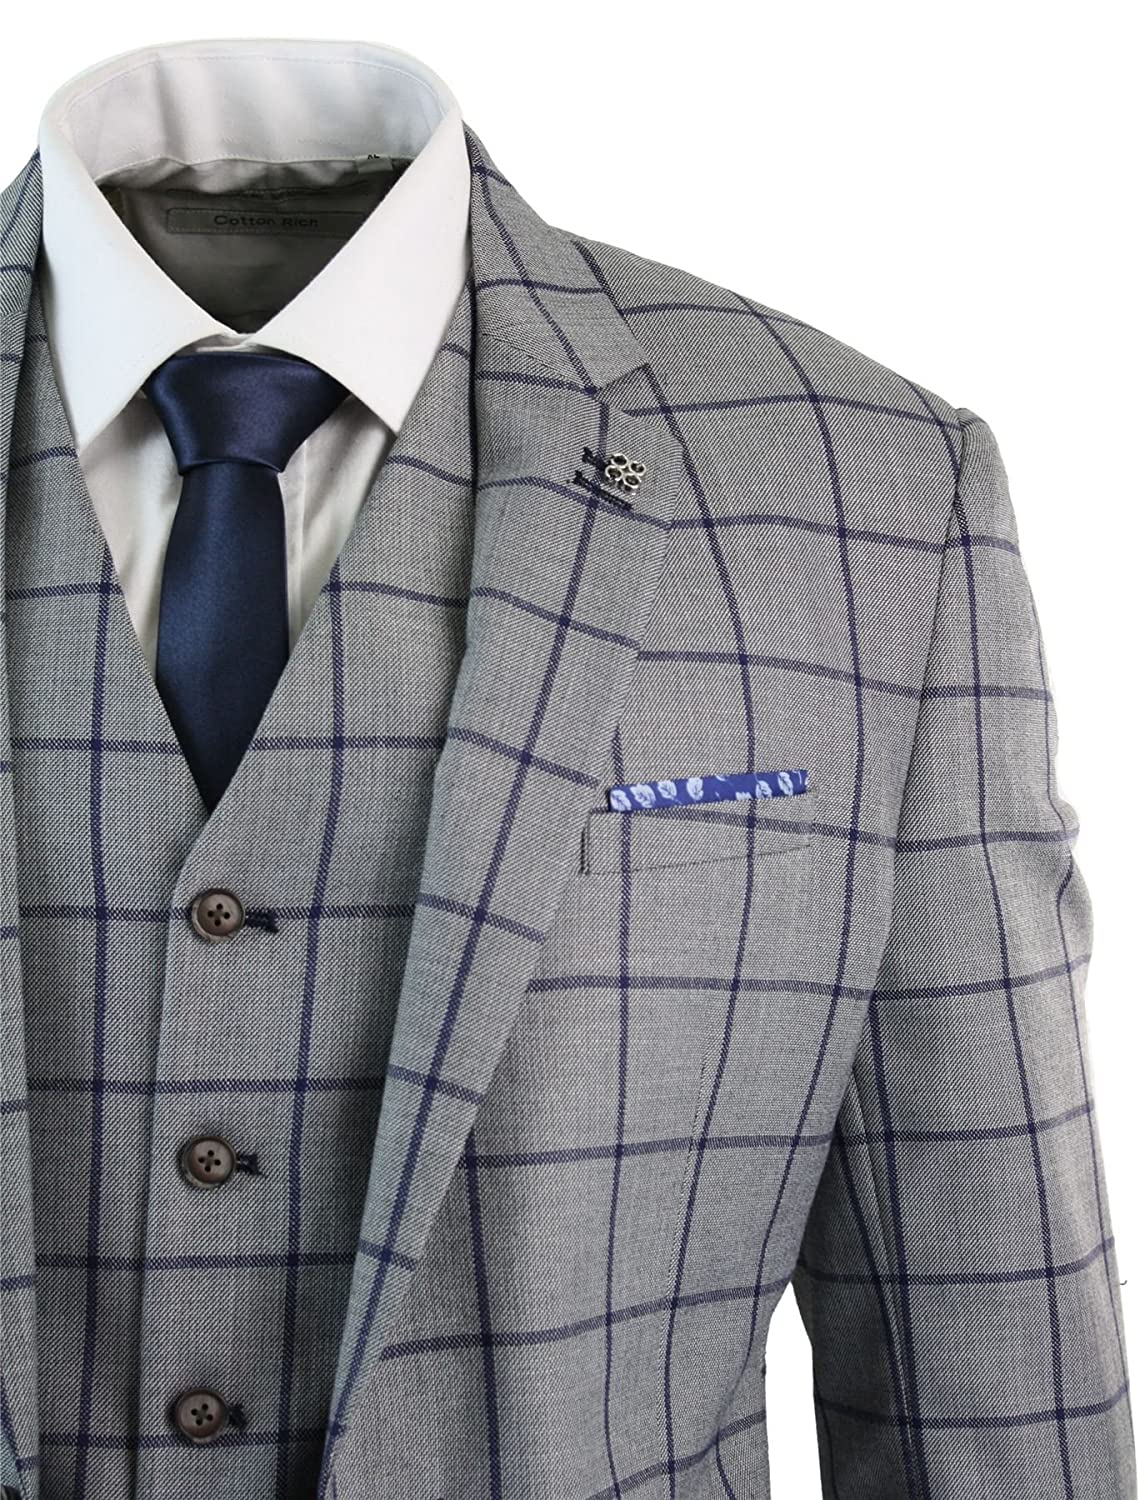 344e72ab028 Mens 3 Piece Tailored Fit Check Suit Grey Navy Blue Smart Formal Classic  Vintage Retro cavani